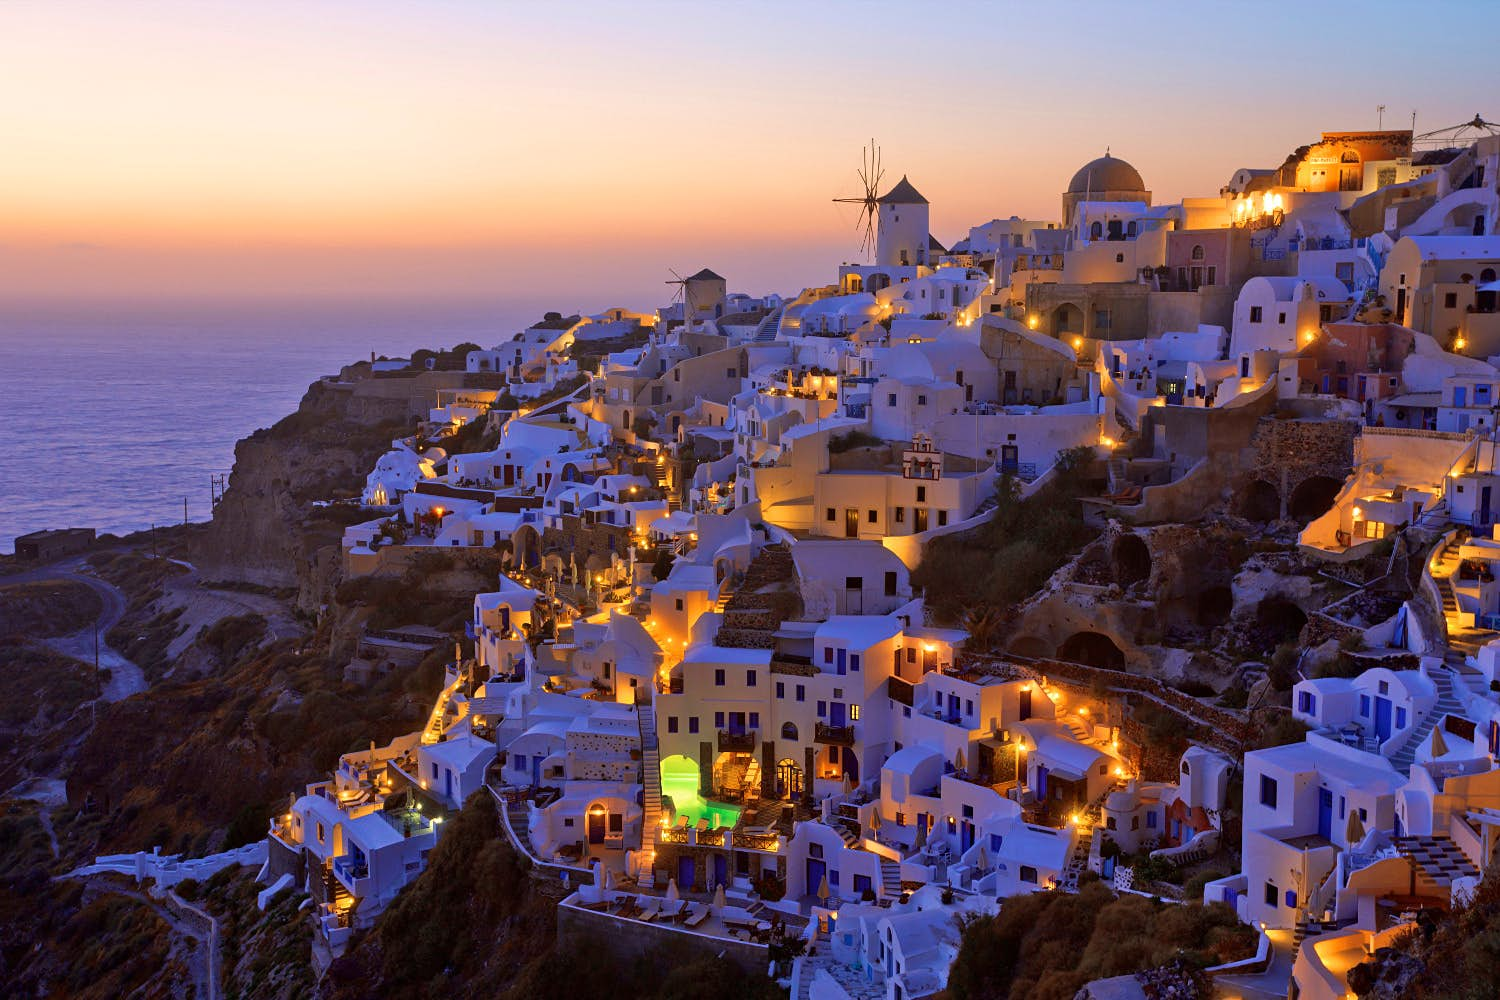 The sky turns pink and purple during sunset over the white buildings of cliffside Santorini.